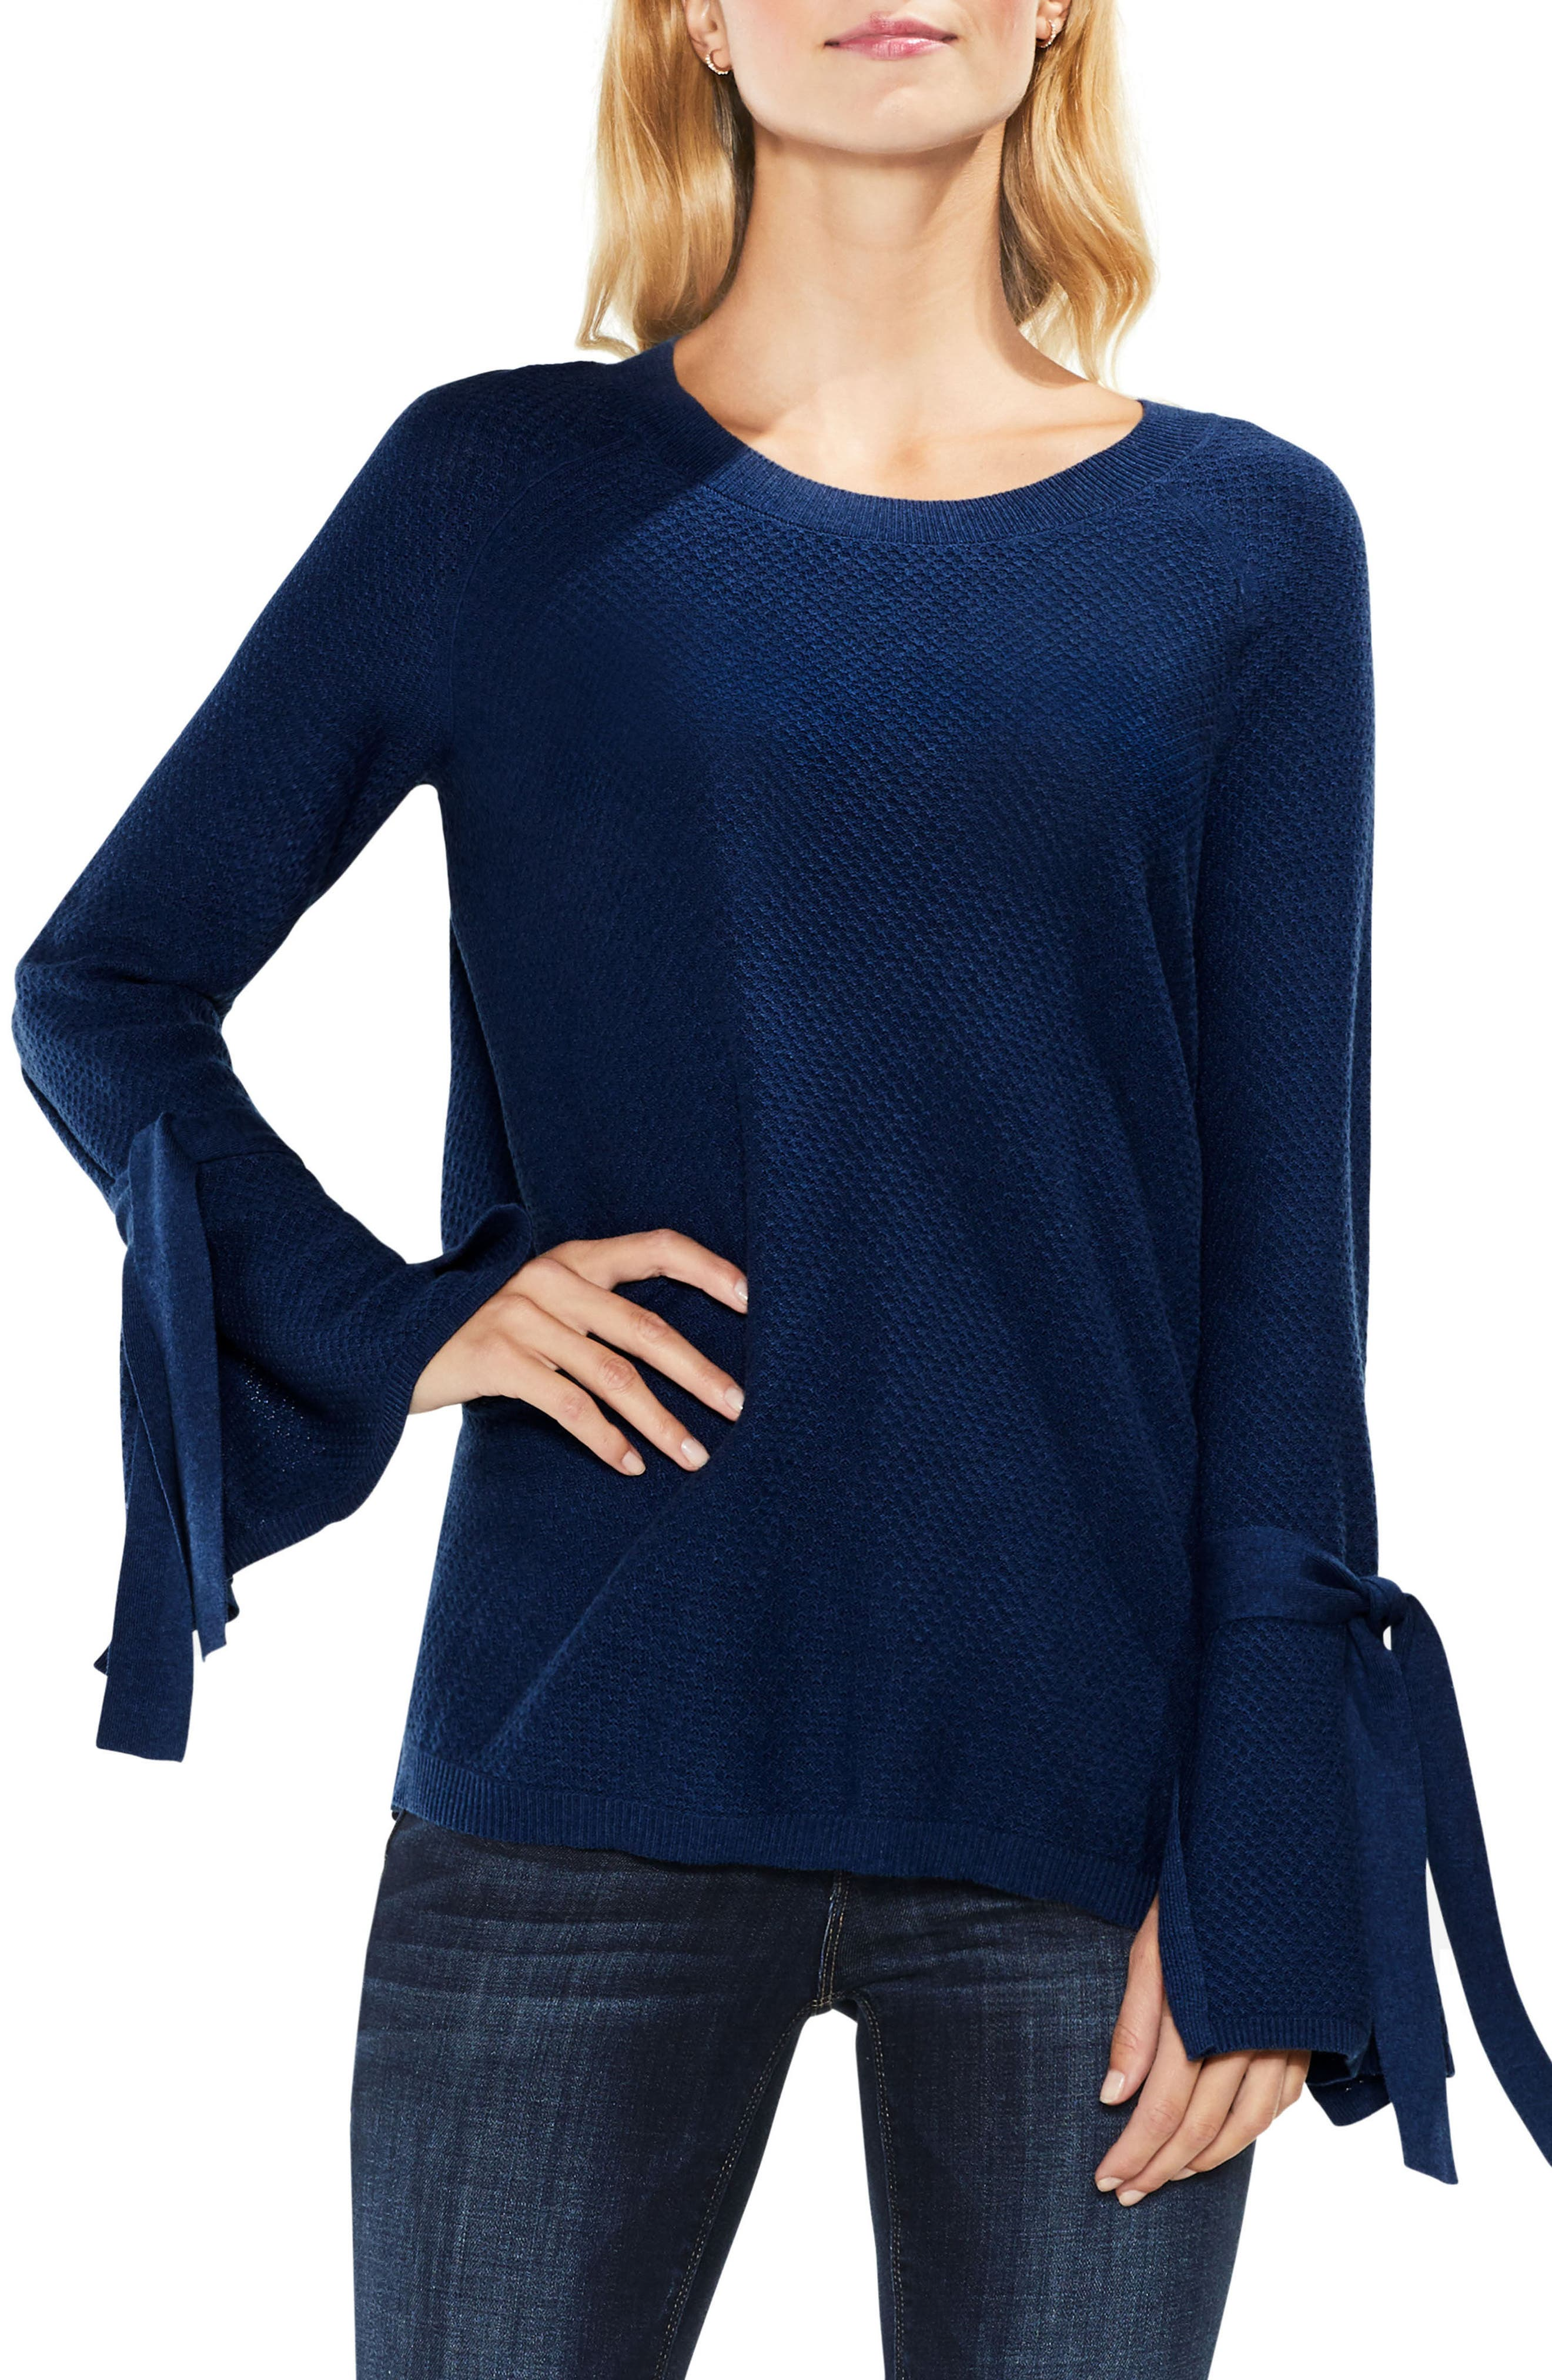 Alternate Image 1 Selected - Two by Vince Camuto Texture Stitch Tie-Sleeve Top (Regular & Petite)